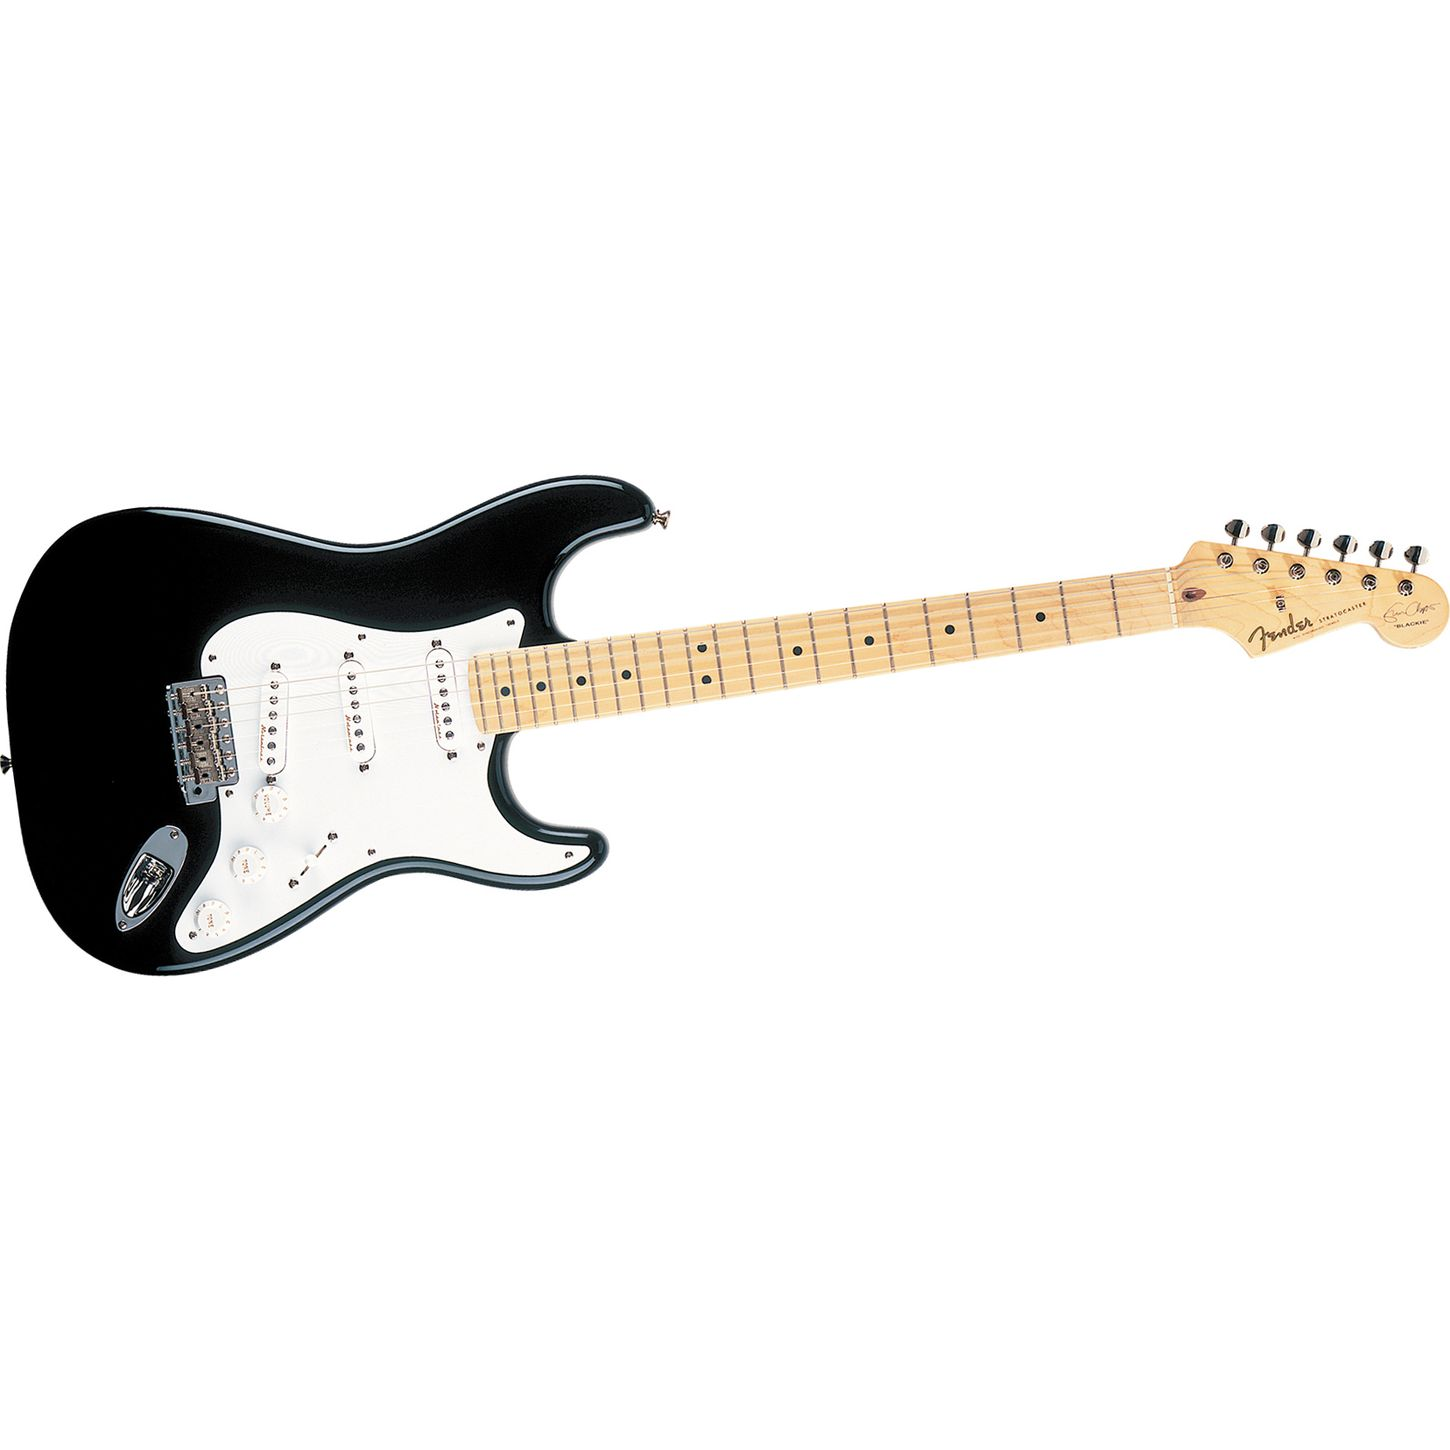 Black And White Guitar Drawing At Free For Fender American Special Stratocaster Wiring Diagram 1450x1450 Clipart Image